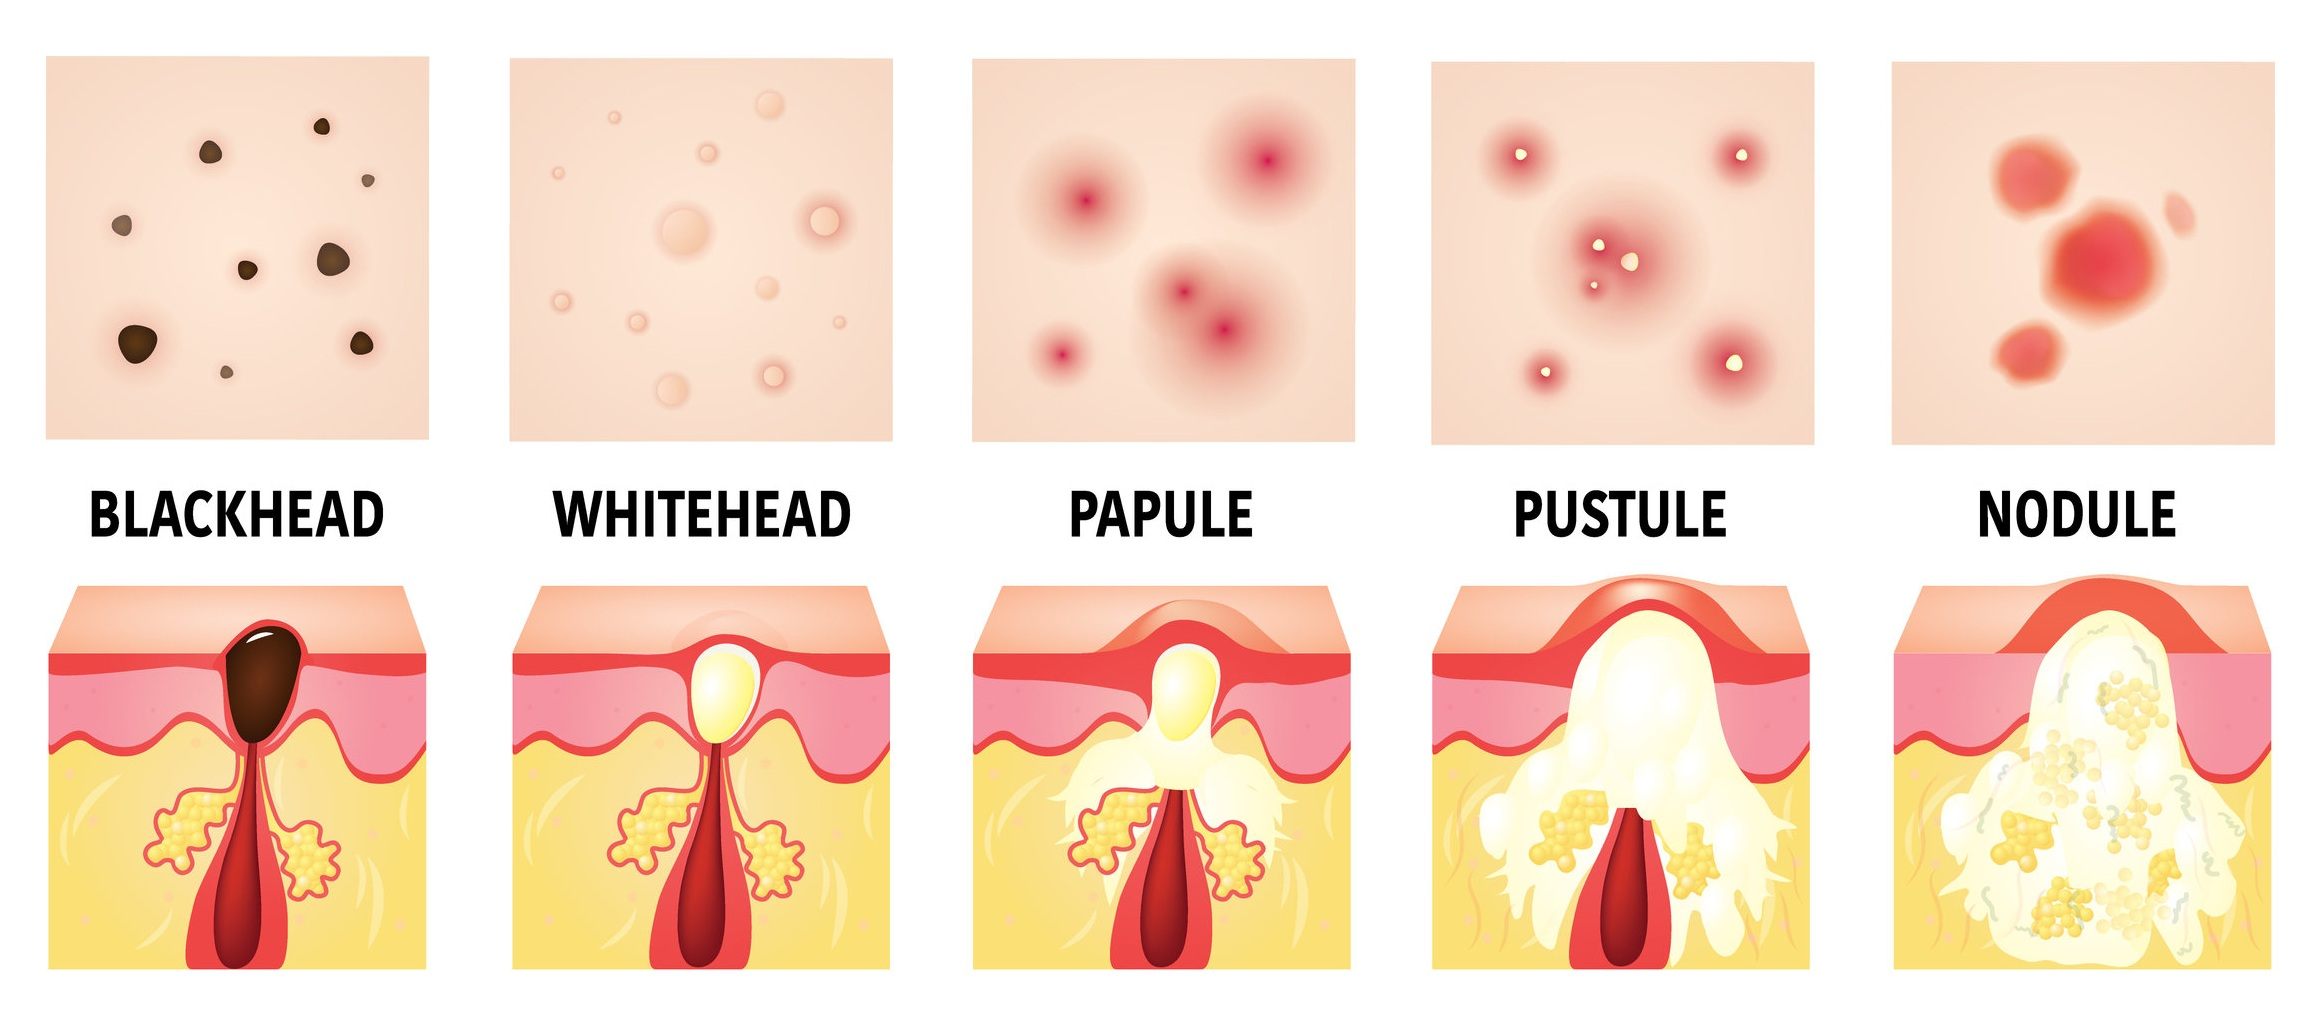 """Blackheads and Whiteheads"" in this graphic are examples of non-inflamed acne; ""Papules, Pustules, and Nodules (Cysts) are examples of inflamed acne."